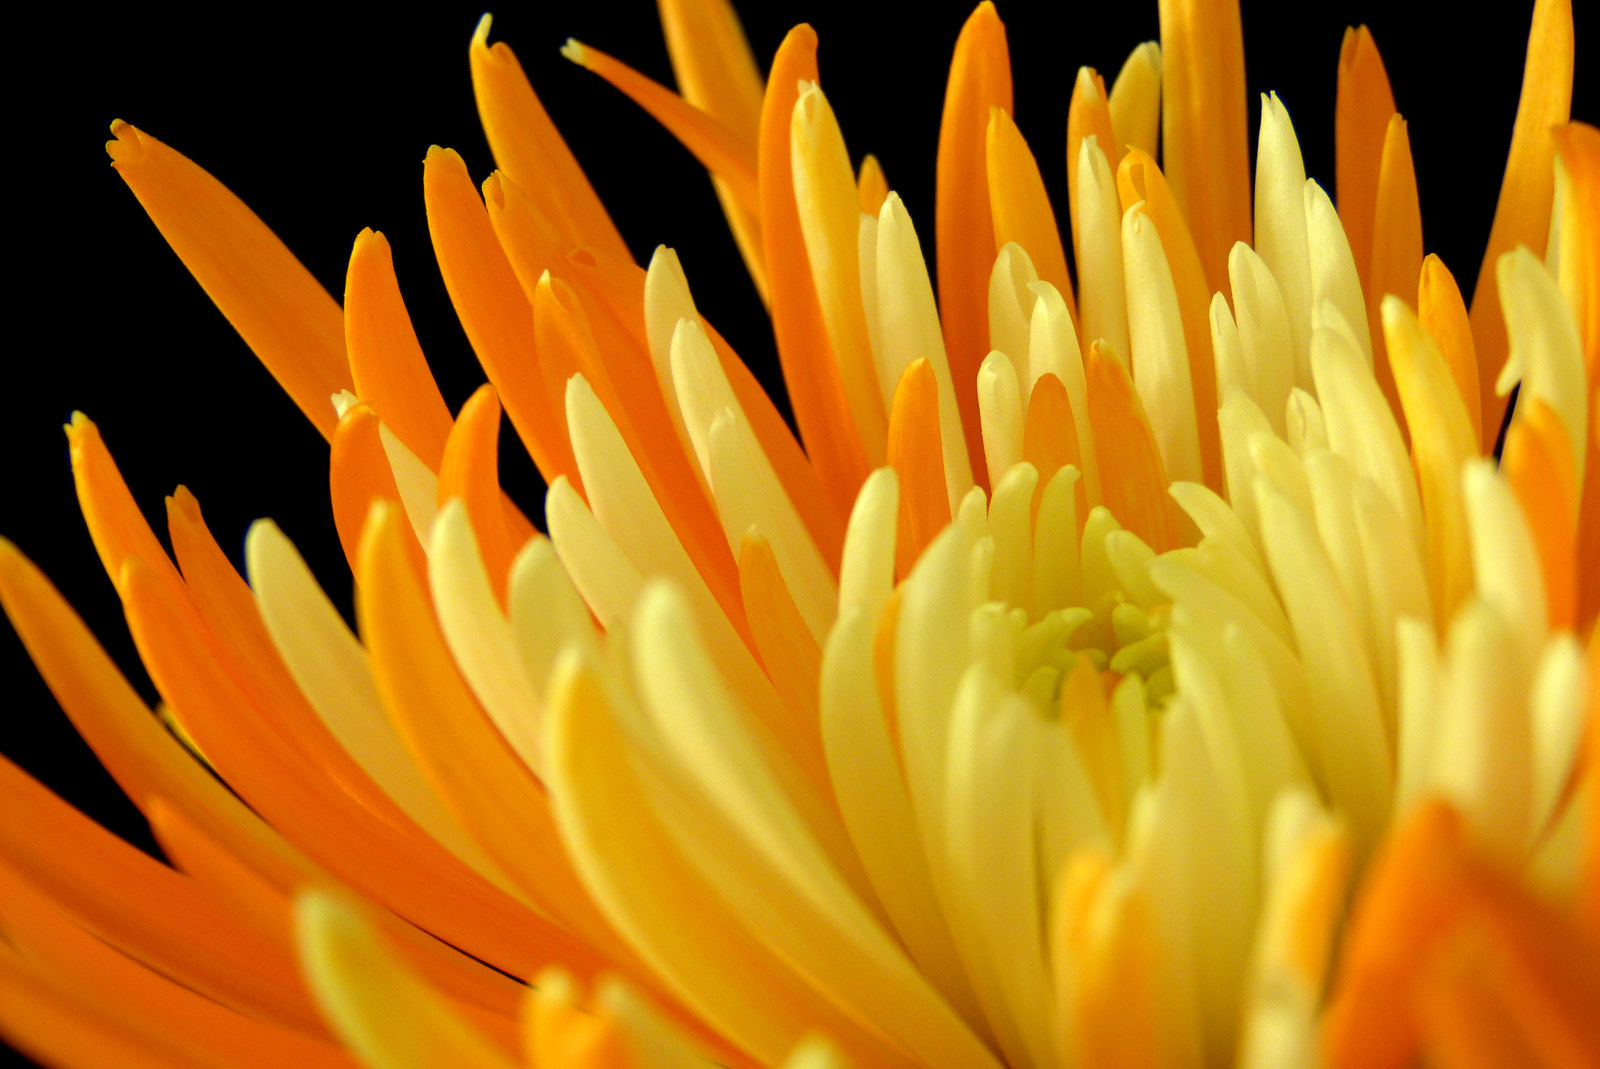 Photograph Black and Orange by Wes Owen on 500px